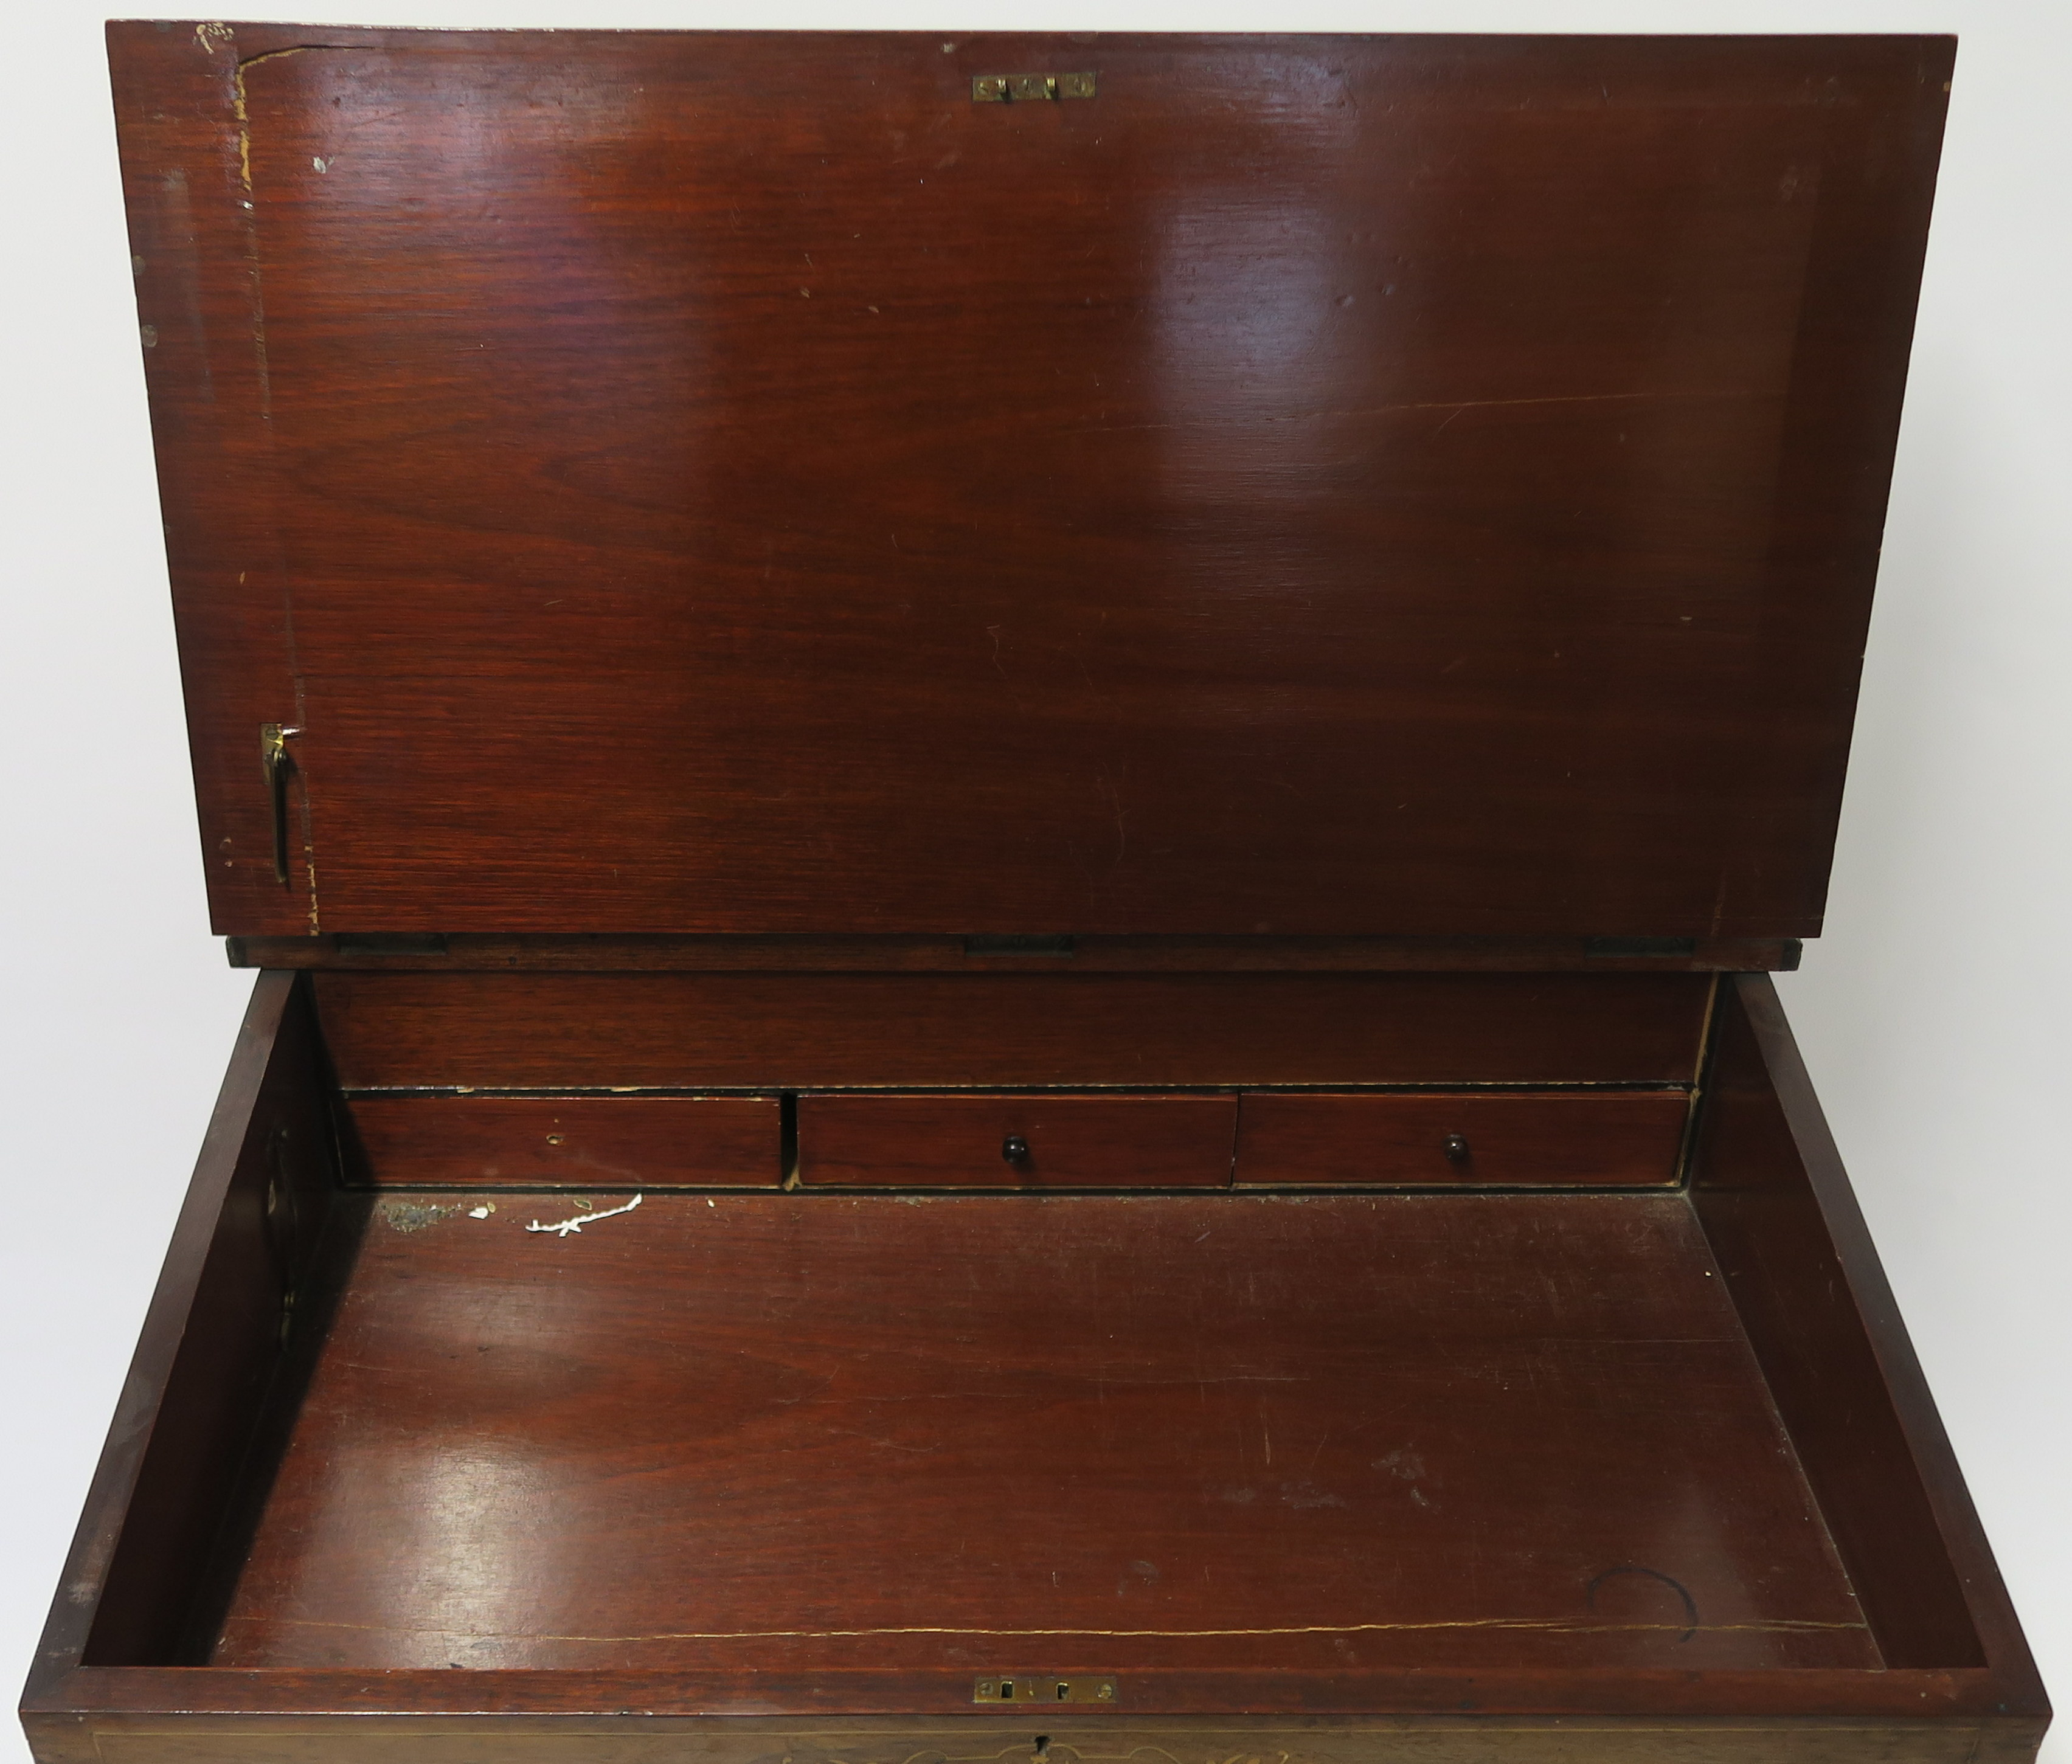 A VICTORIAN INLAID WALNUT DAVENPORT of standard design with four drawers 95cm high, 75cm wide and - Image 5 of 9